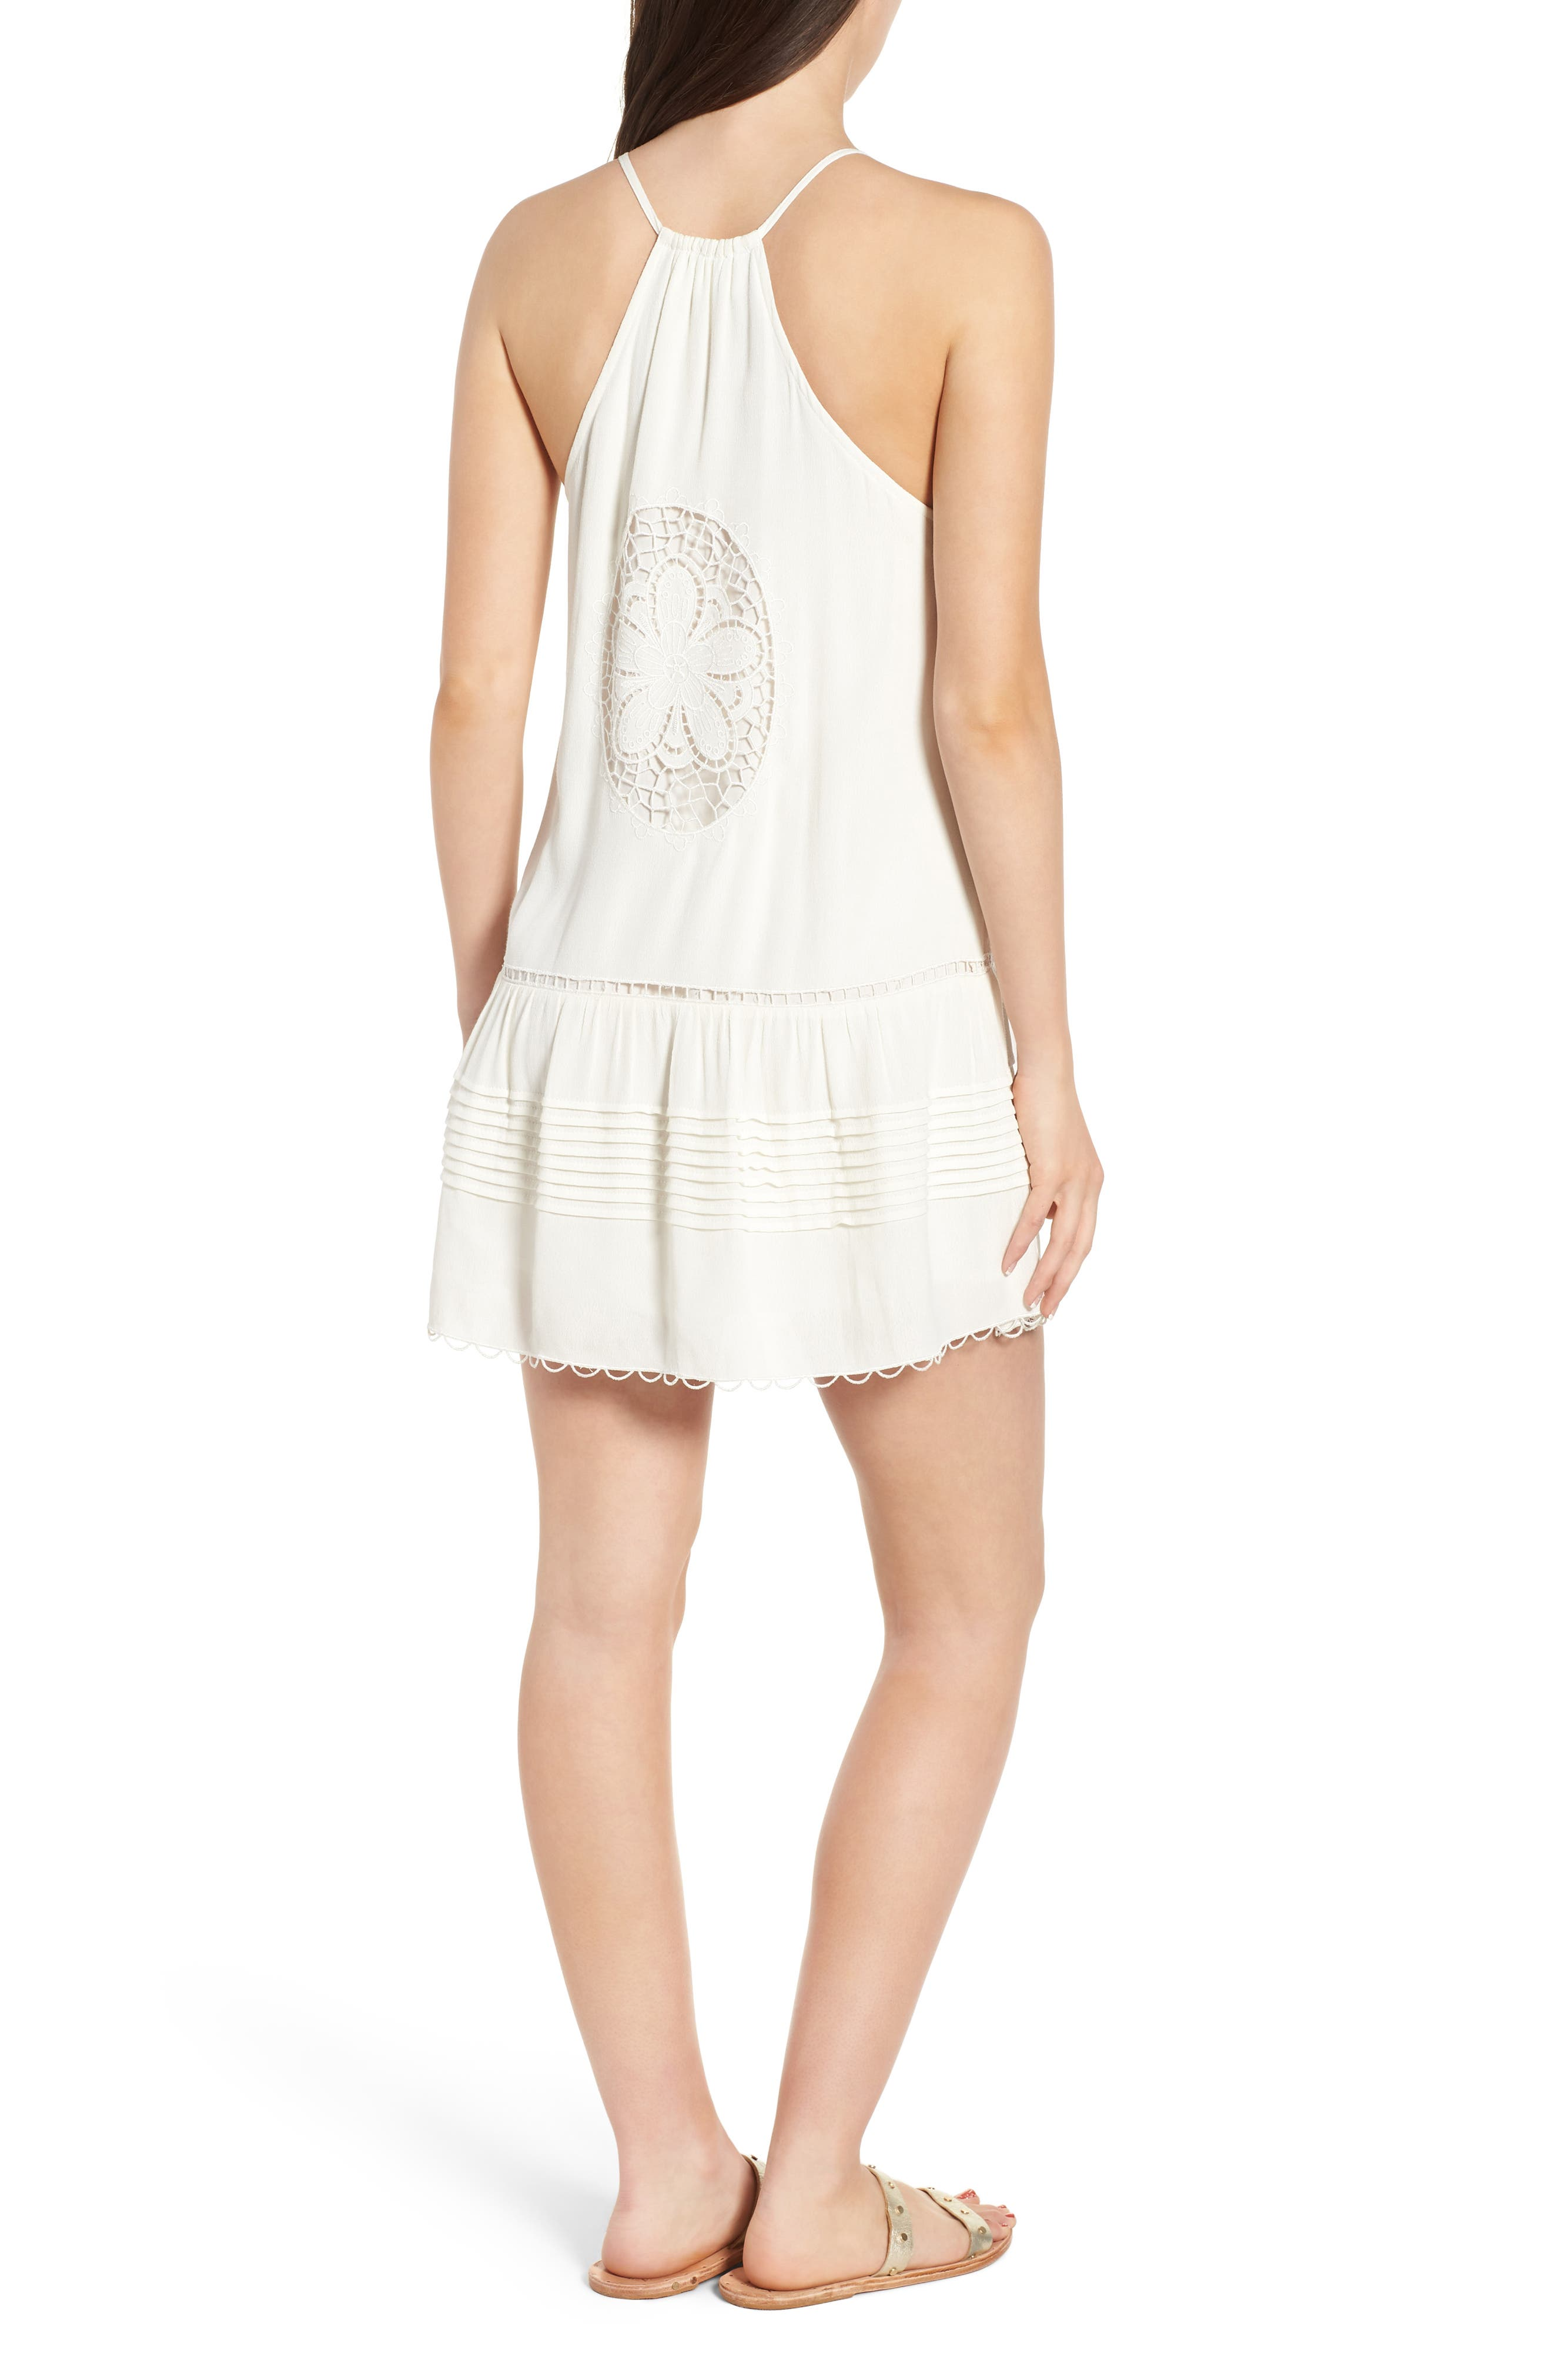 Sincerely Embroidered Minidress,                             Alternate thumbnail 2, color,                             900